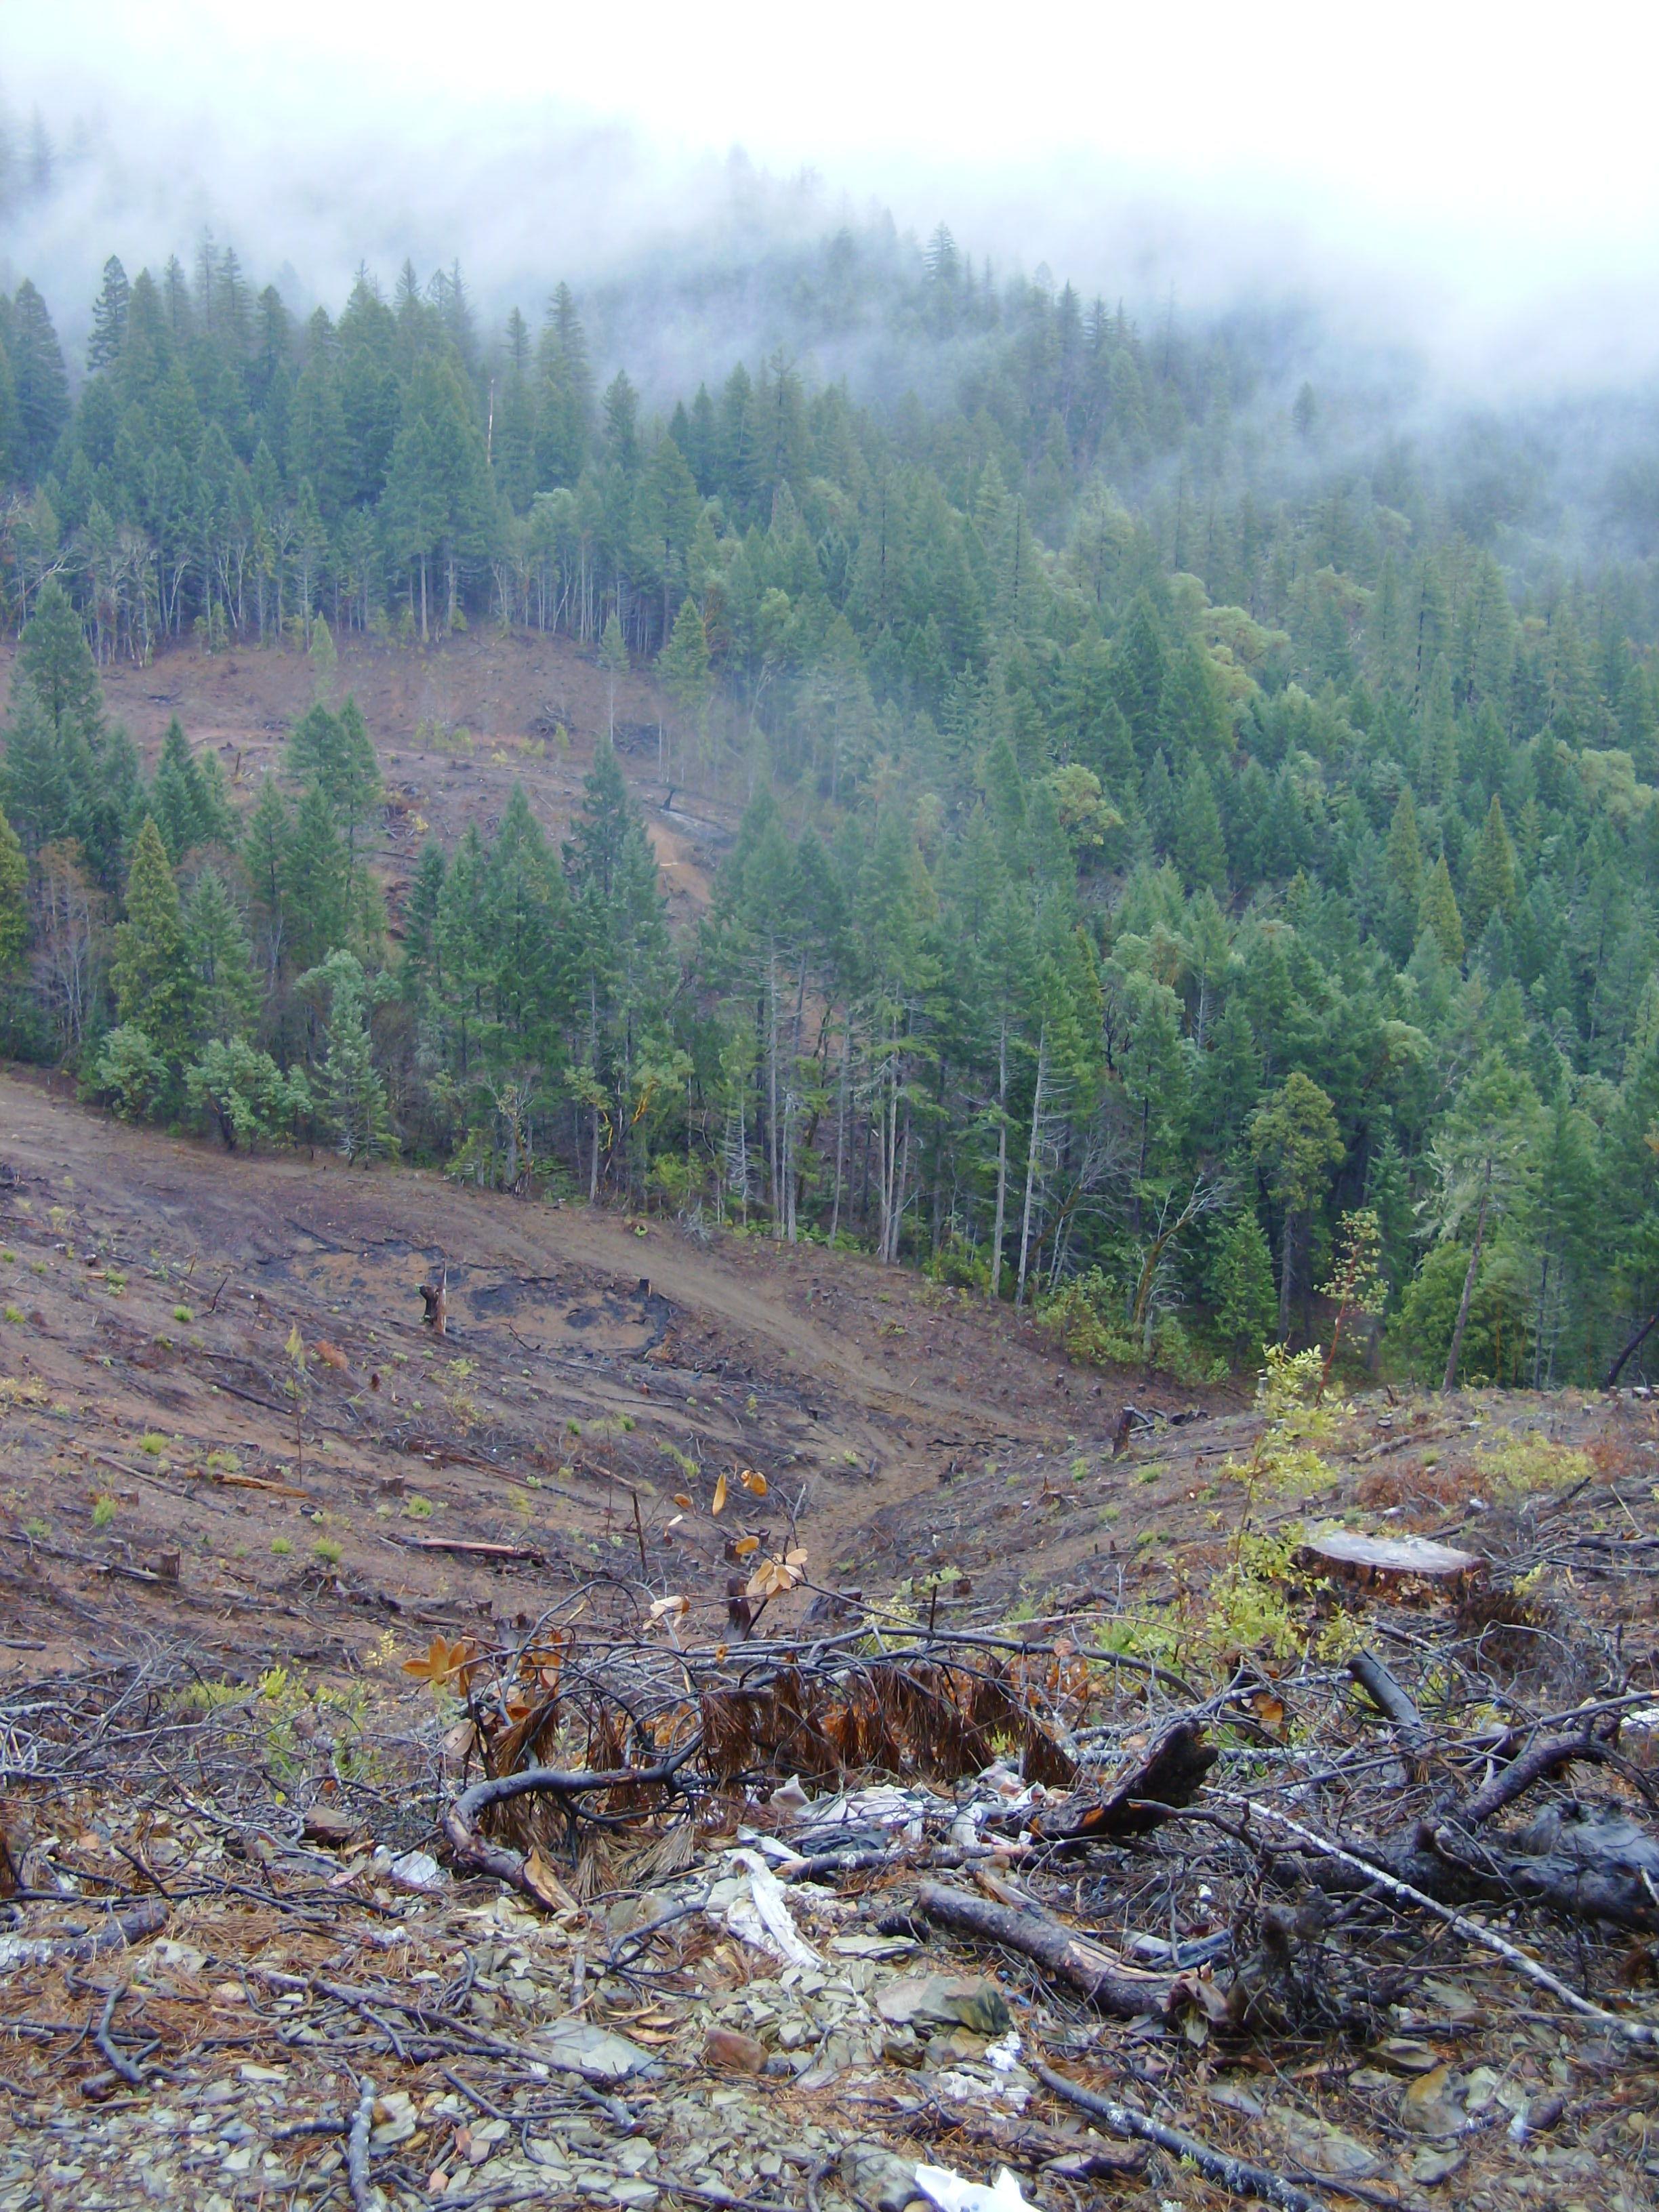 Pesticides were sprayed on this steep clear cut.